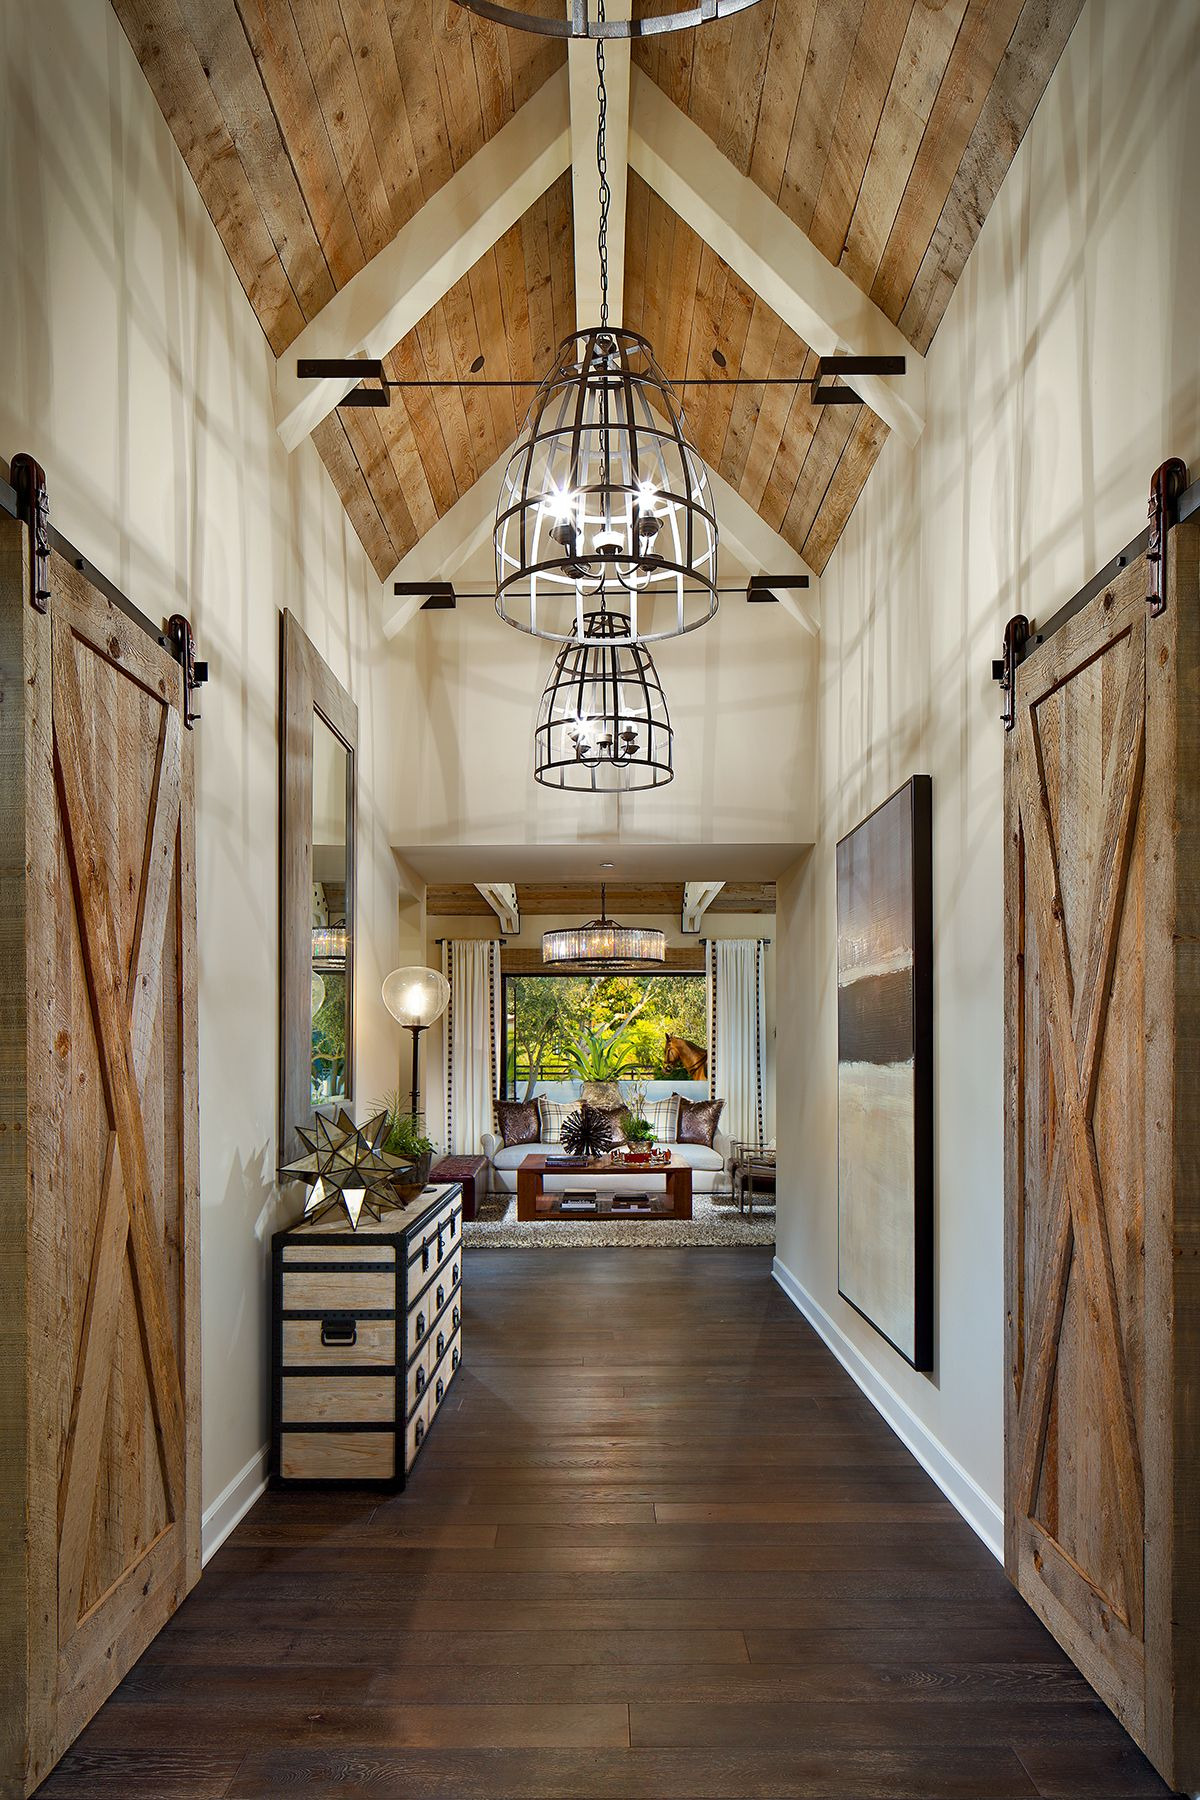 Fixer upper   chip joanna may have started  shiplap farmhouse craze but bill davidson took it to the next level by transforming an equestrian farm into also koko wpc vinyl plank flooring in home ideas rh pinterest